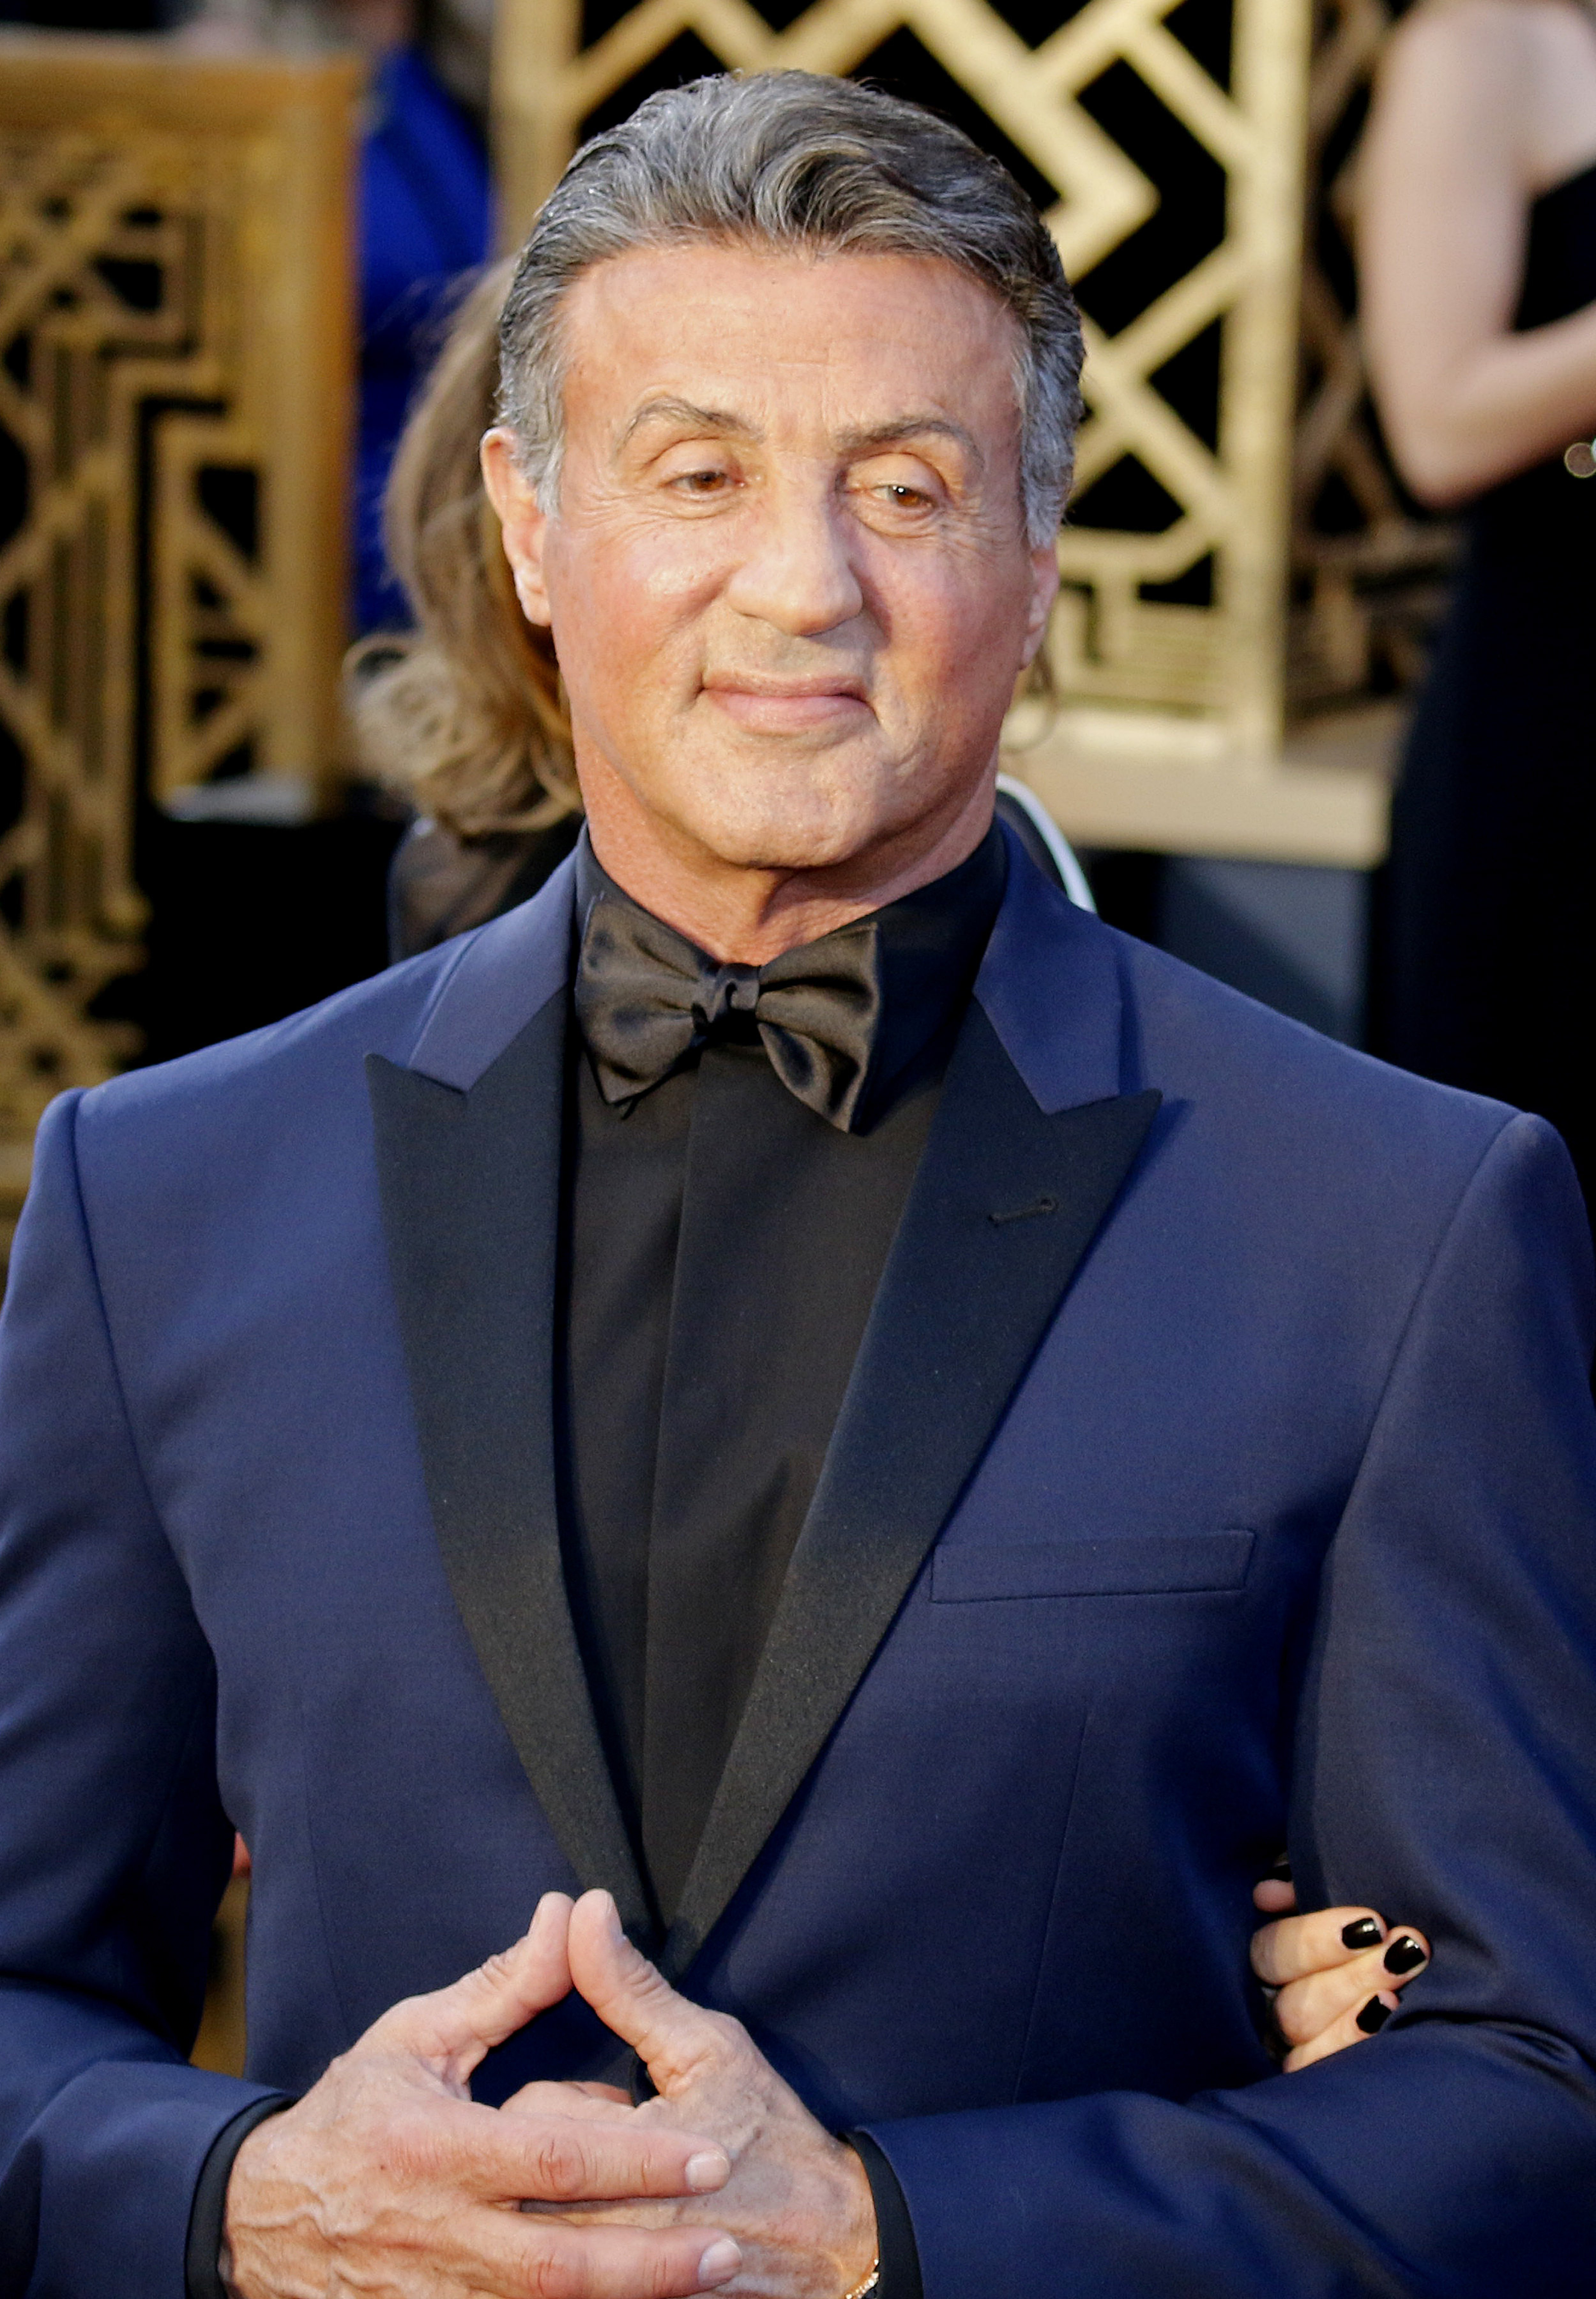 Sylvester Stallone in Hollywood, USA am 28. Februar 2016. | Quelle: Shutterstock